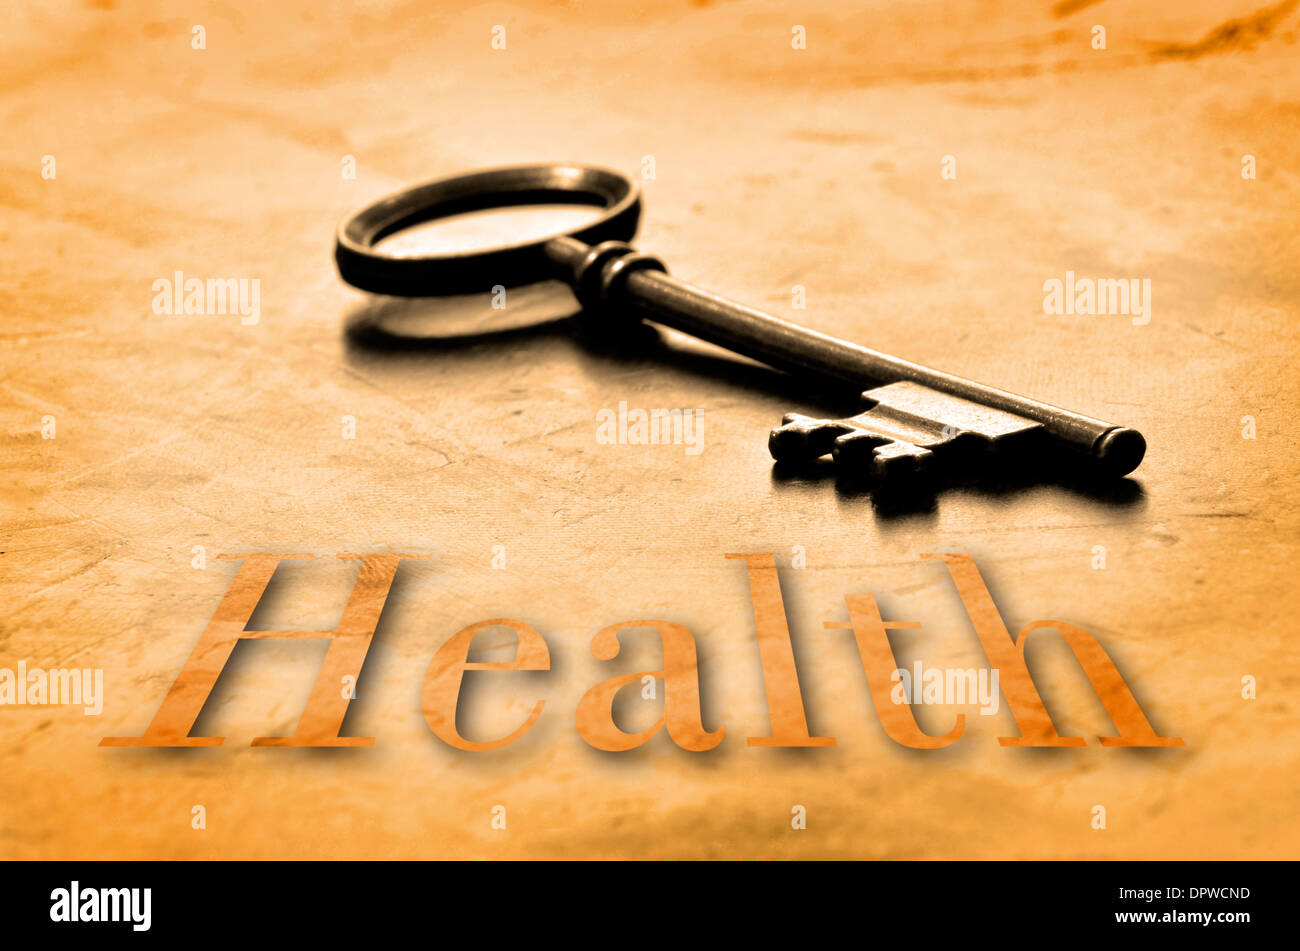 Key to Health on an old worn wooden desk top - Stock Image